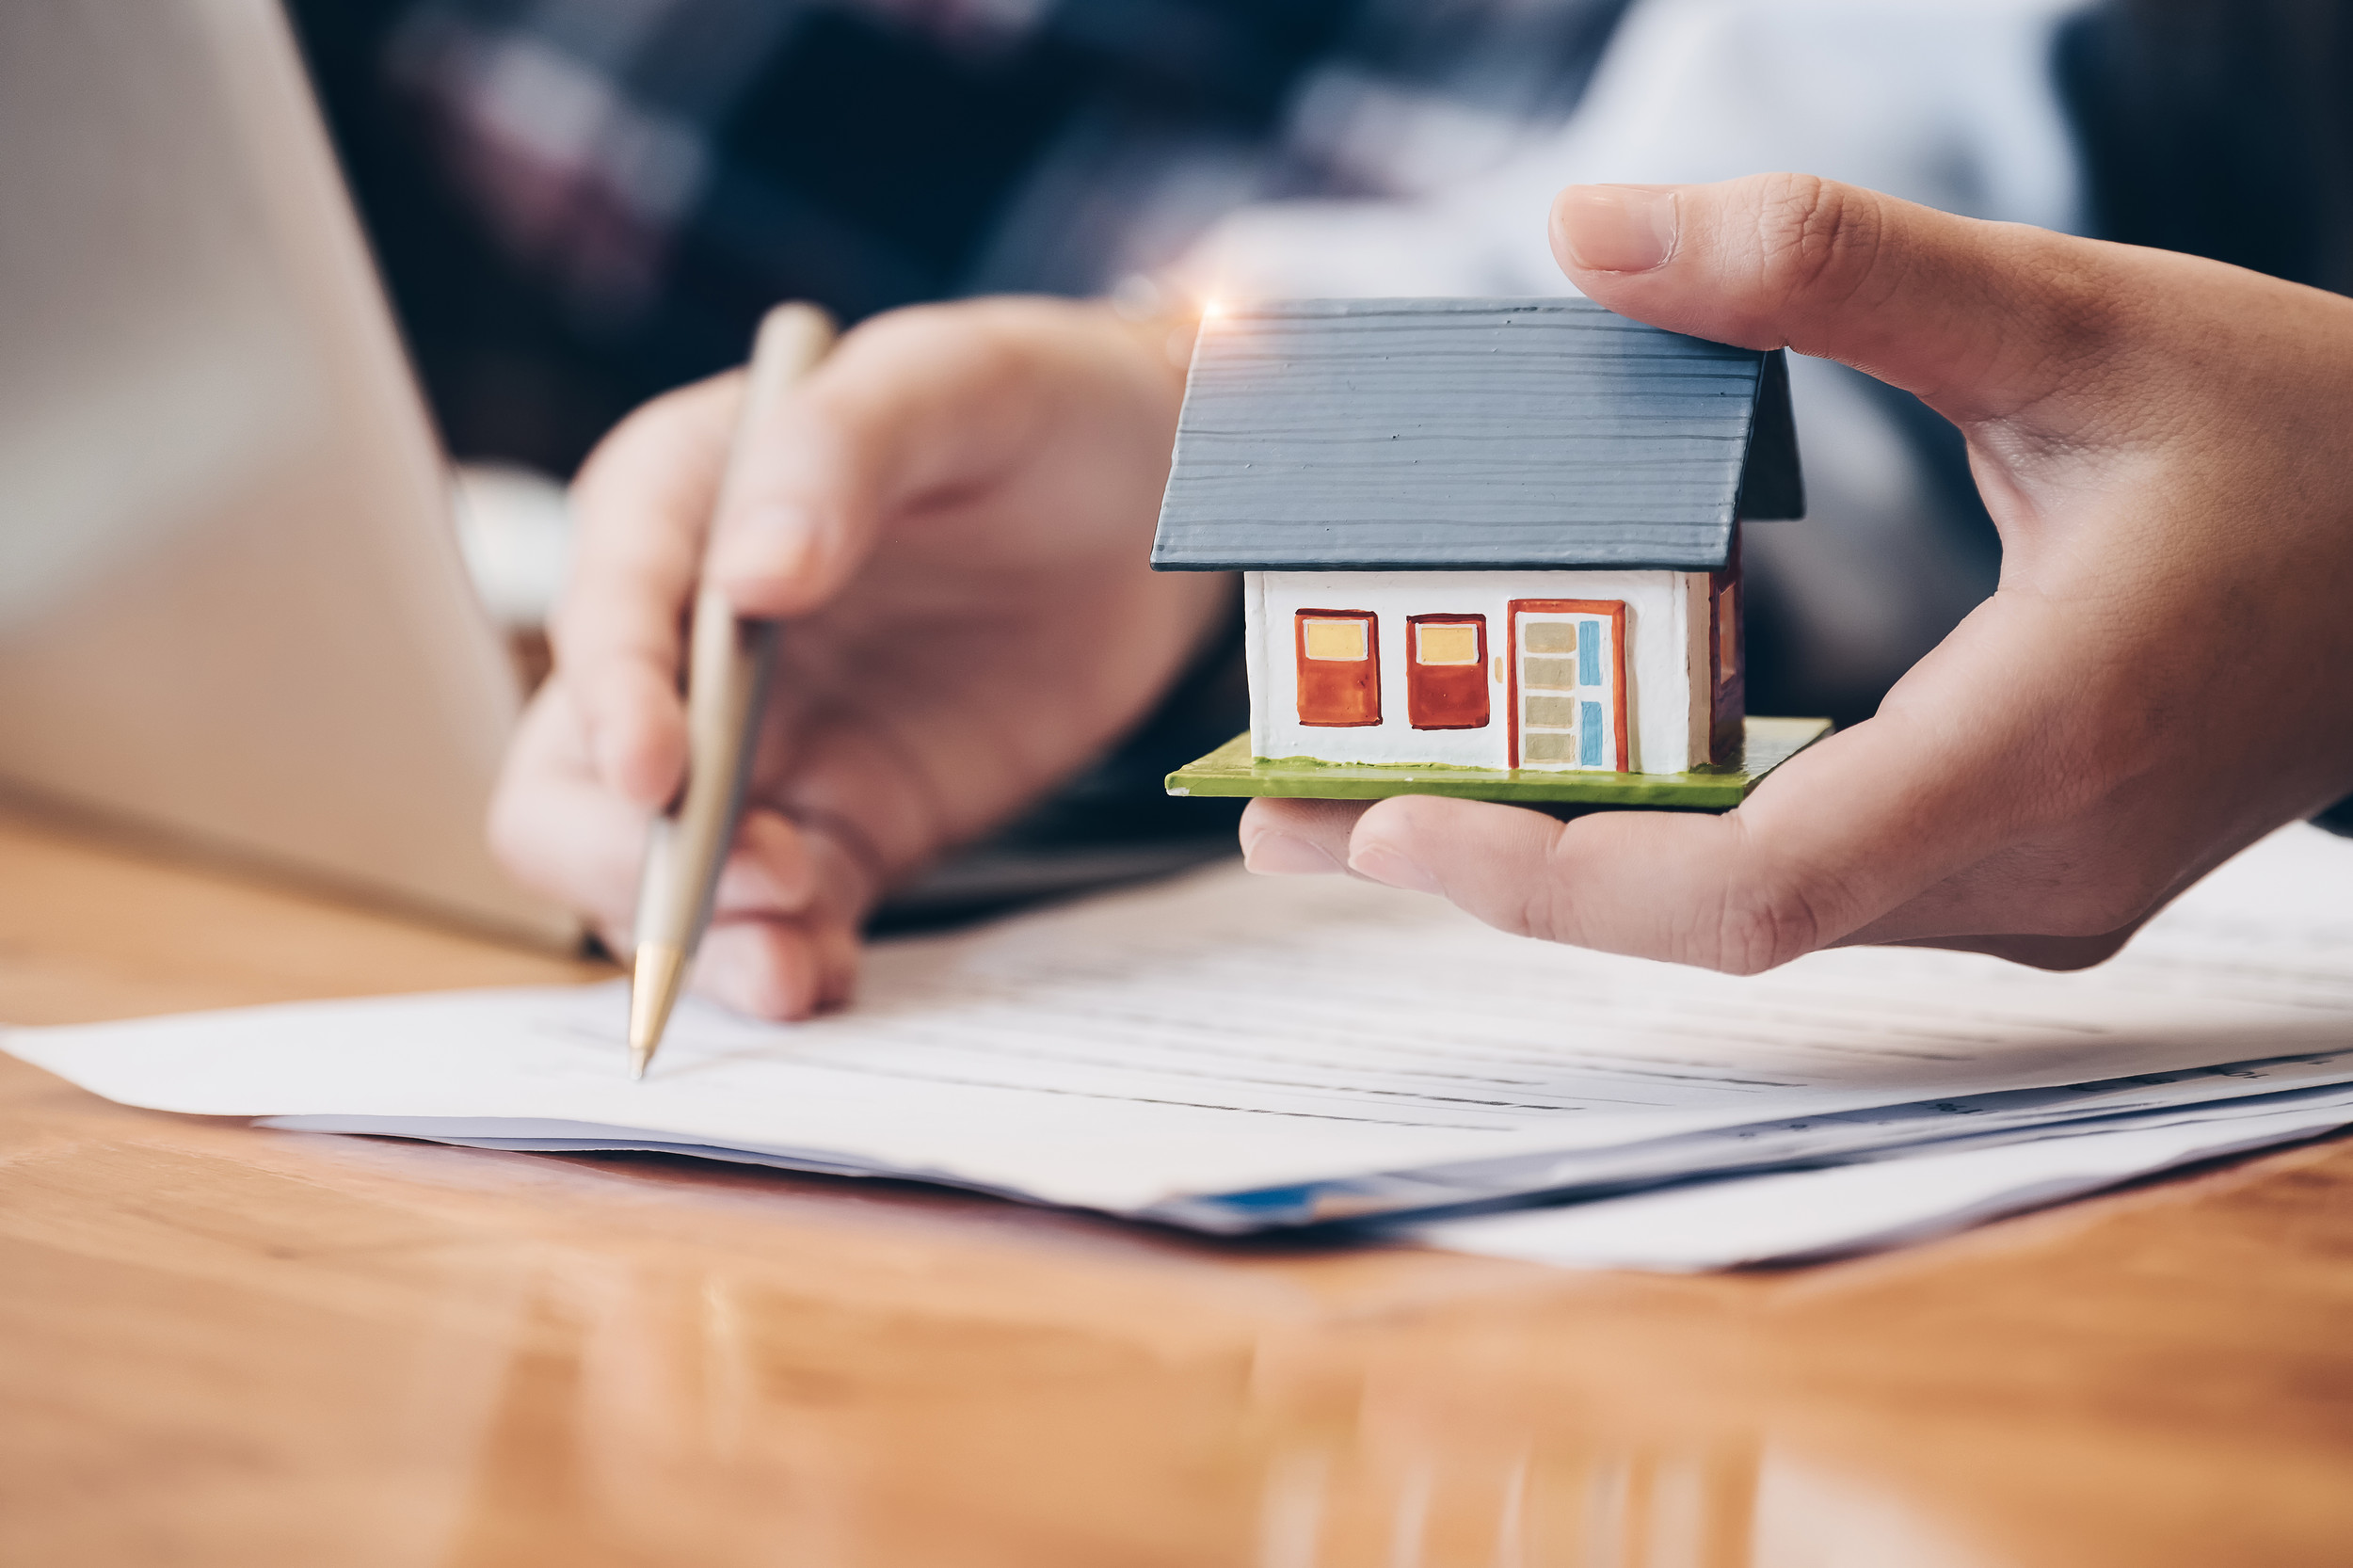 How to buy a second home and rent the first, according to financial planners and tax experts